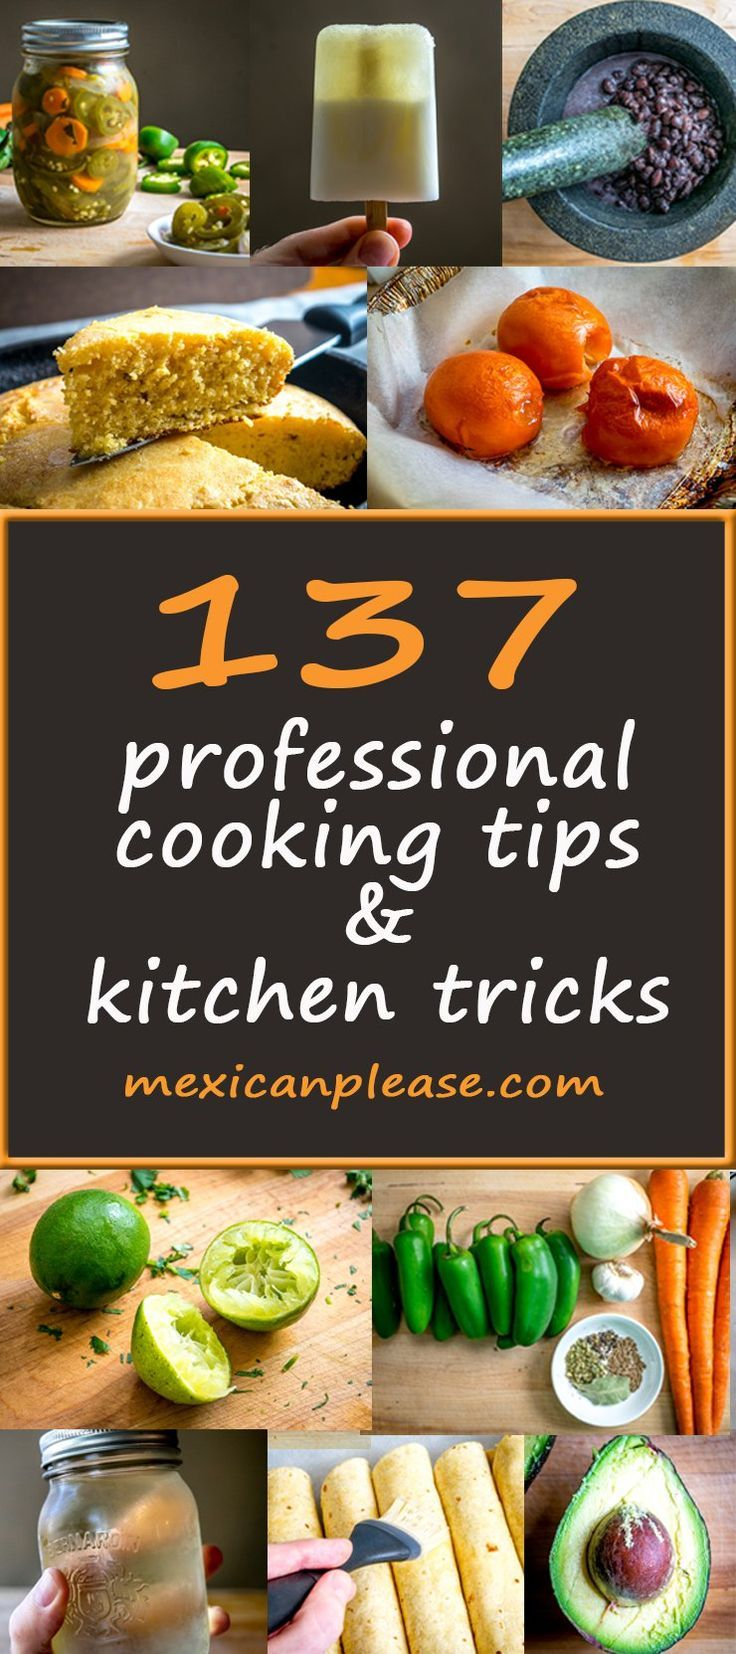 A wealth of kitchen knowledge from today's top food bloggers.  You can scan the list in ten minutes and absorb a lifetime of experience.  So cool!  mexicanplease.com